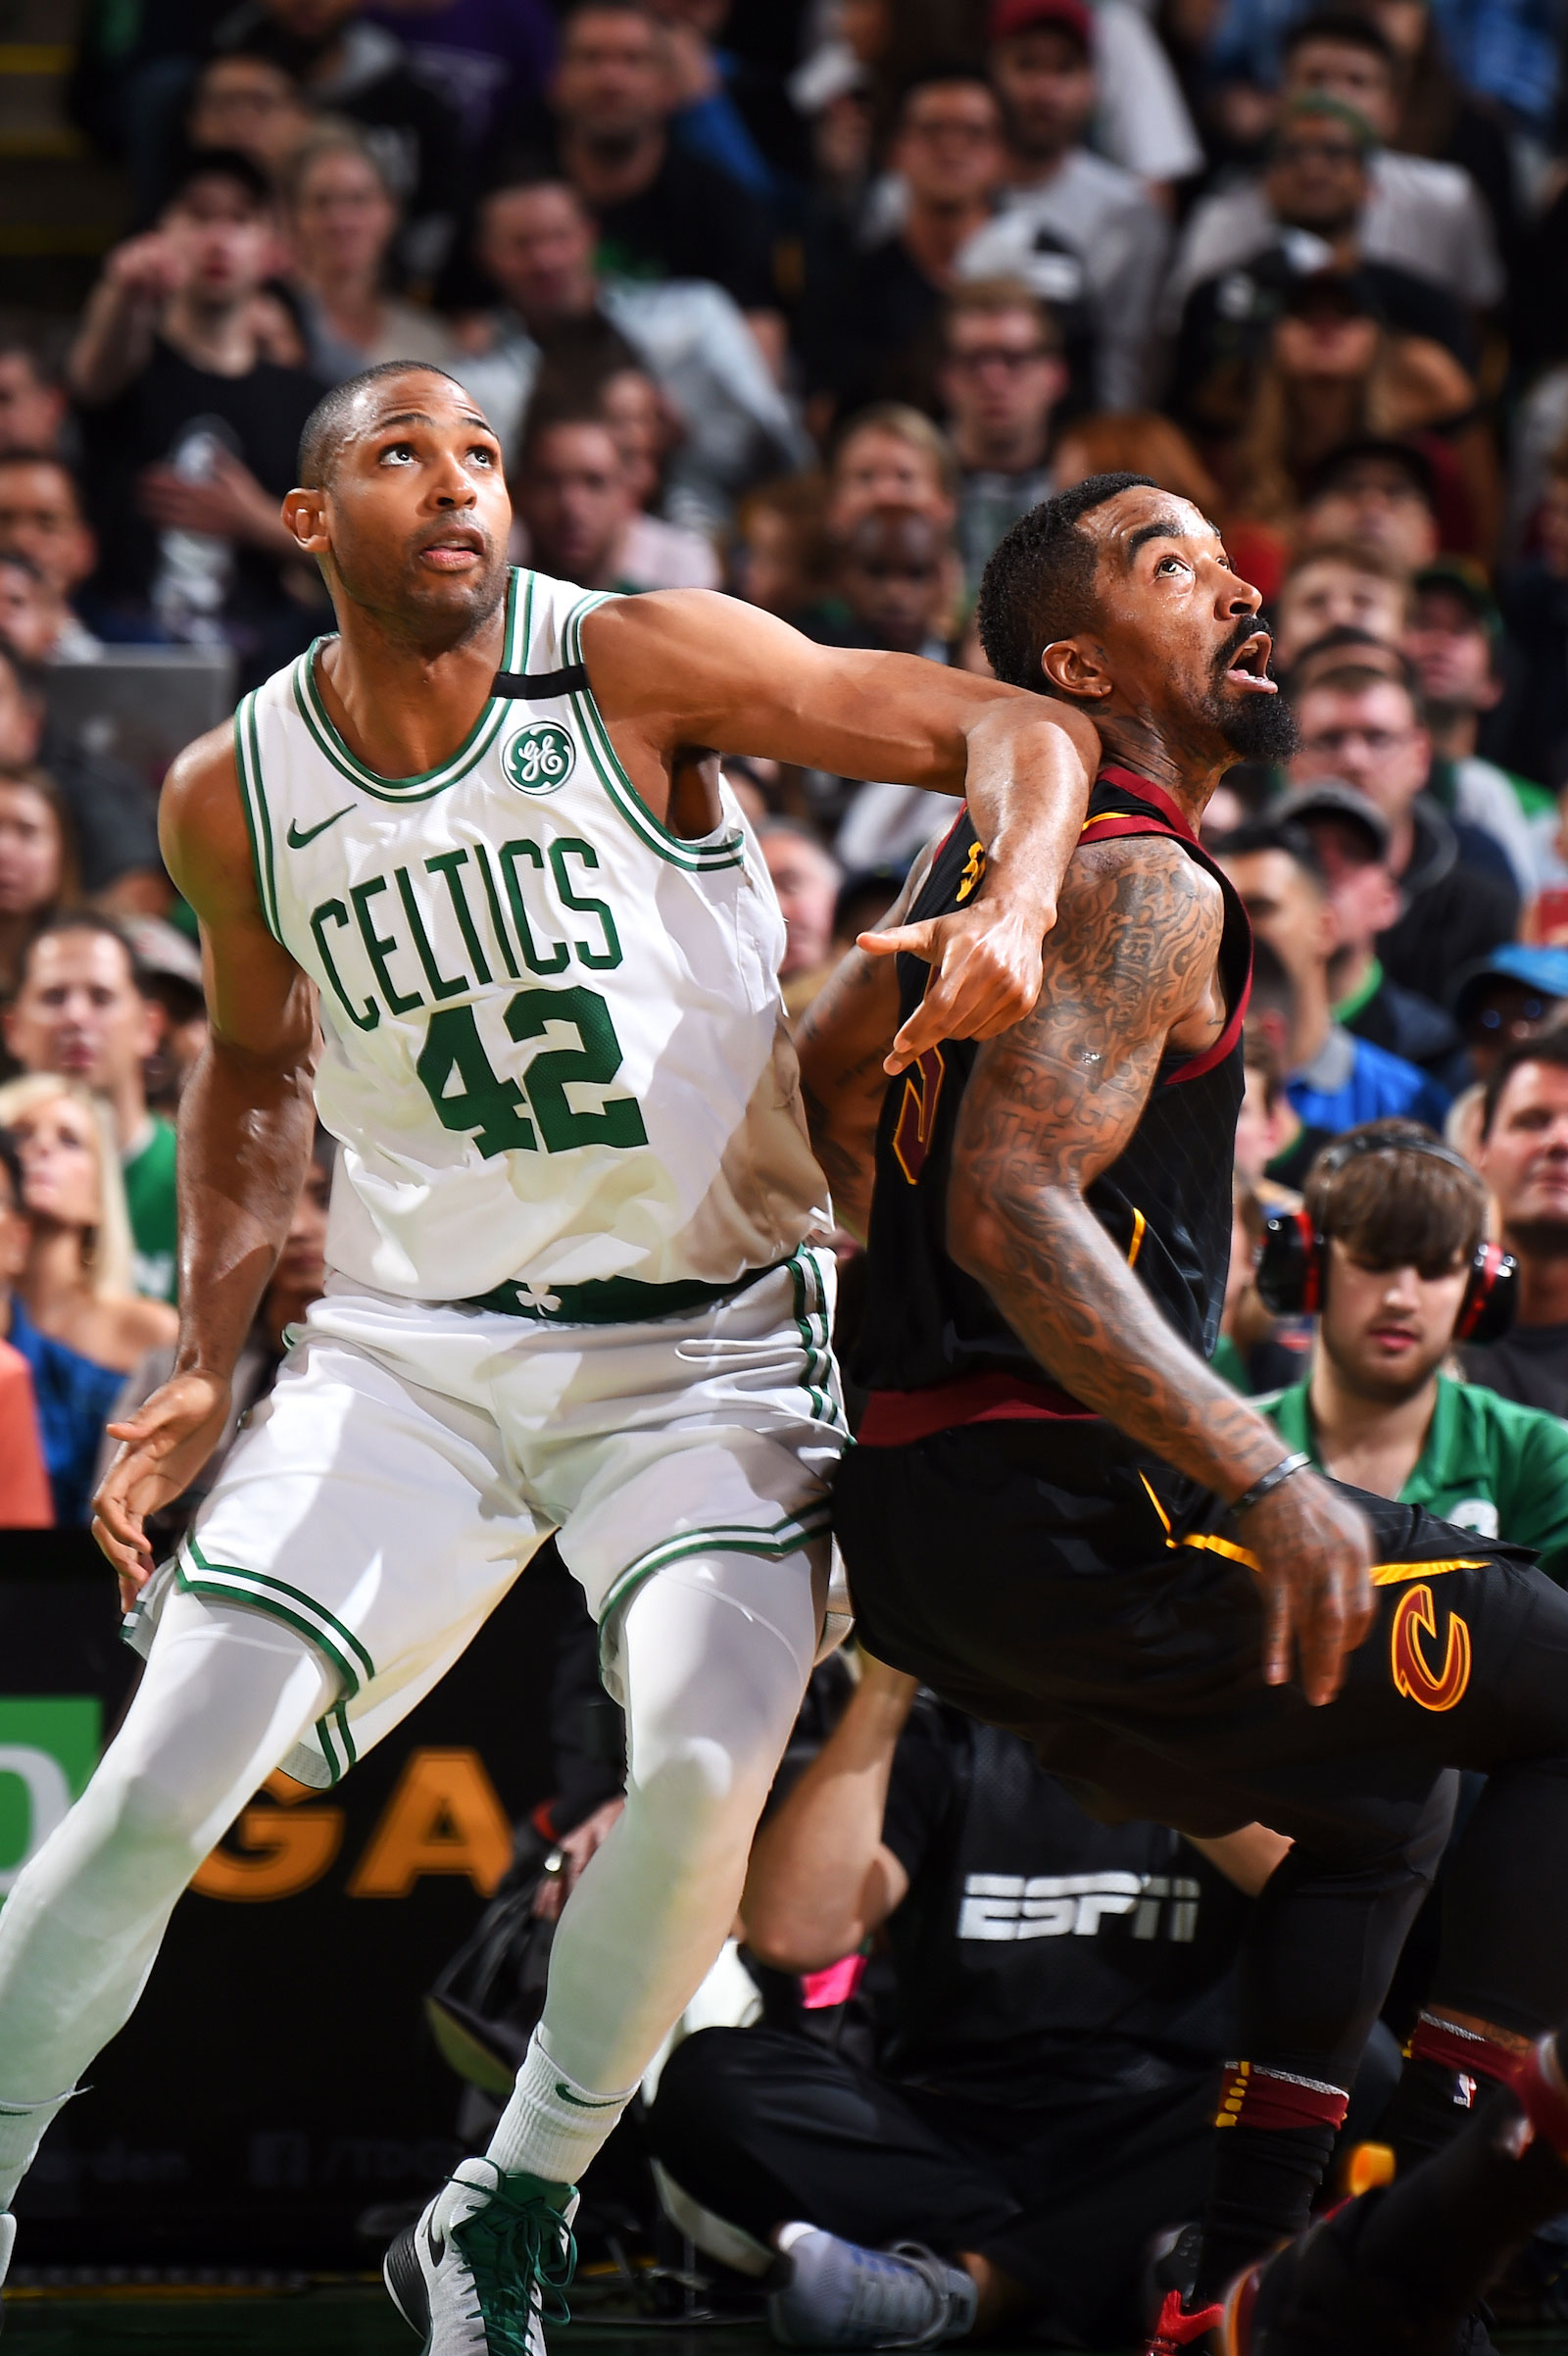 Al Horford #42 of the Boston Celtics boxes out JR Smith #5 of the Cleveland Cavaliers during Game Seven of the Eastern Conference Finals of the 2018 NBA Playoffs between the Cleveland Cavaliers and Boston Celtics on May 27, 2018 at the TD Garden in Boston, Massachusetts.